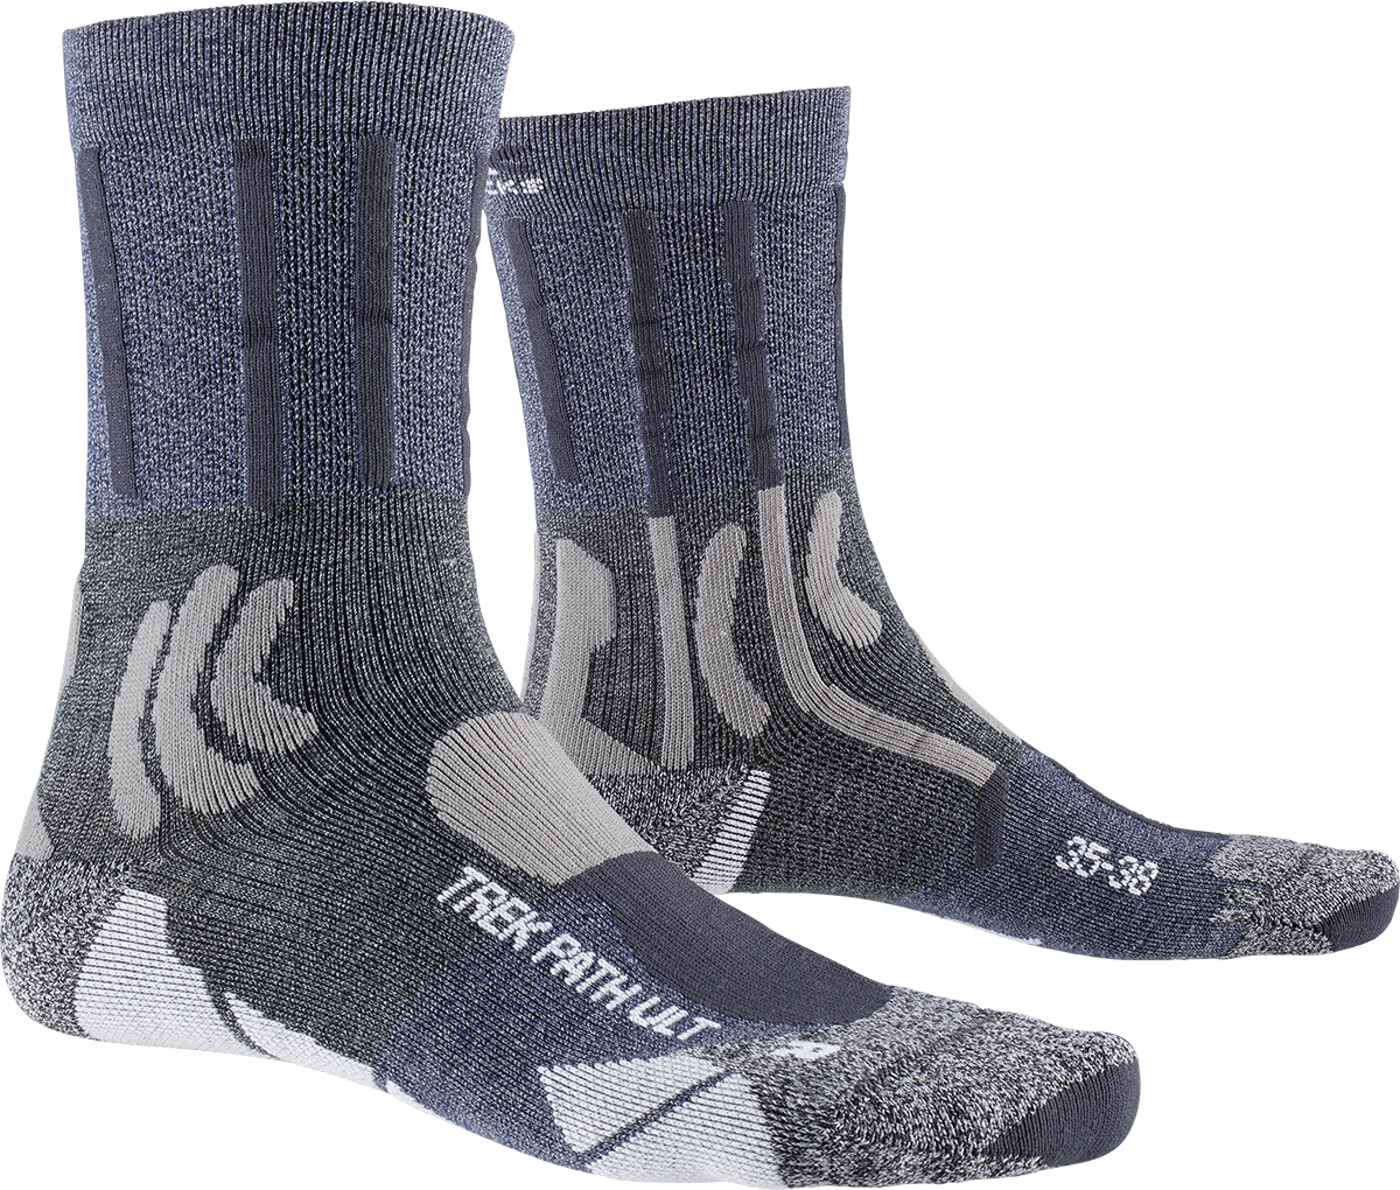 X-BIONIC TREK PATH ULTRA LIGHT Socken - Herren